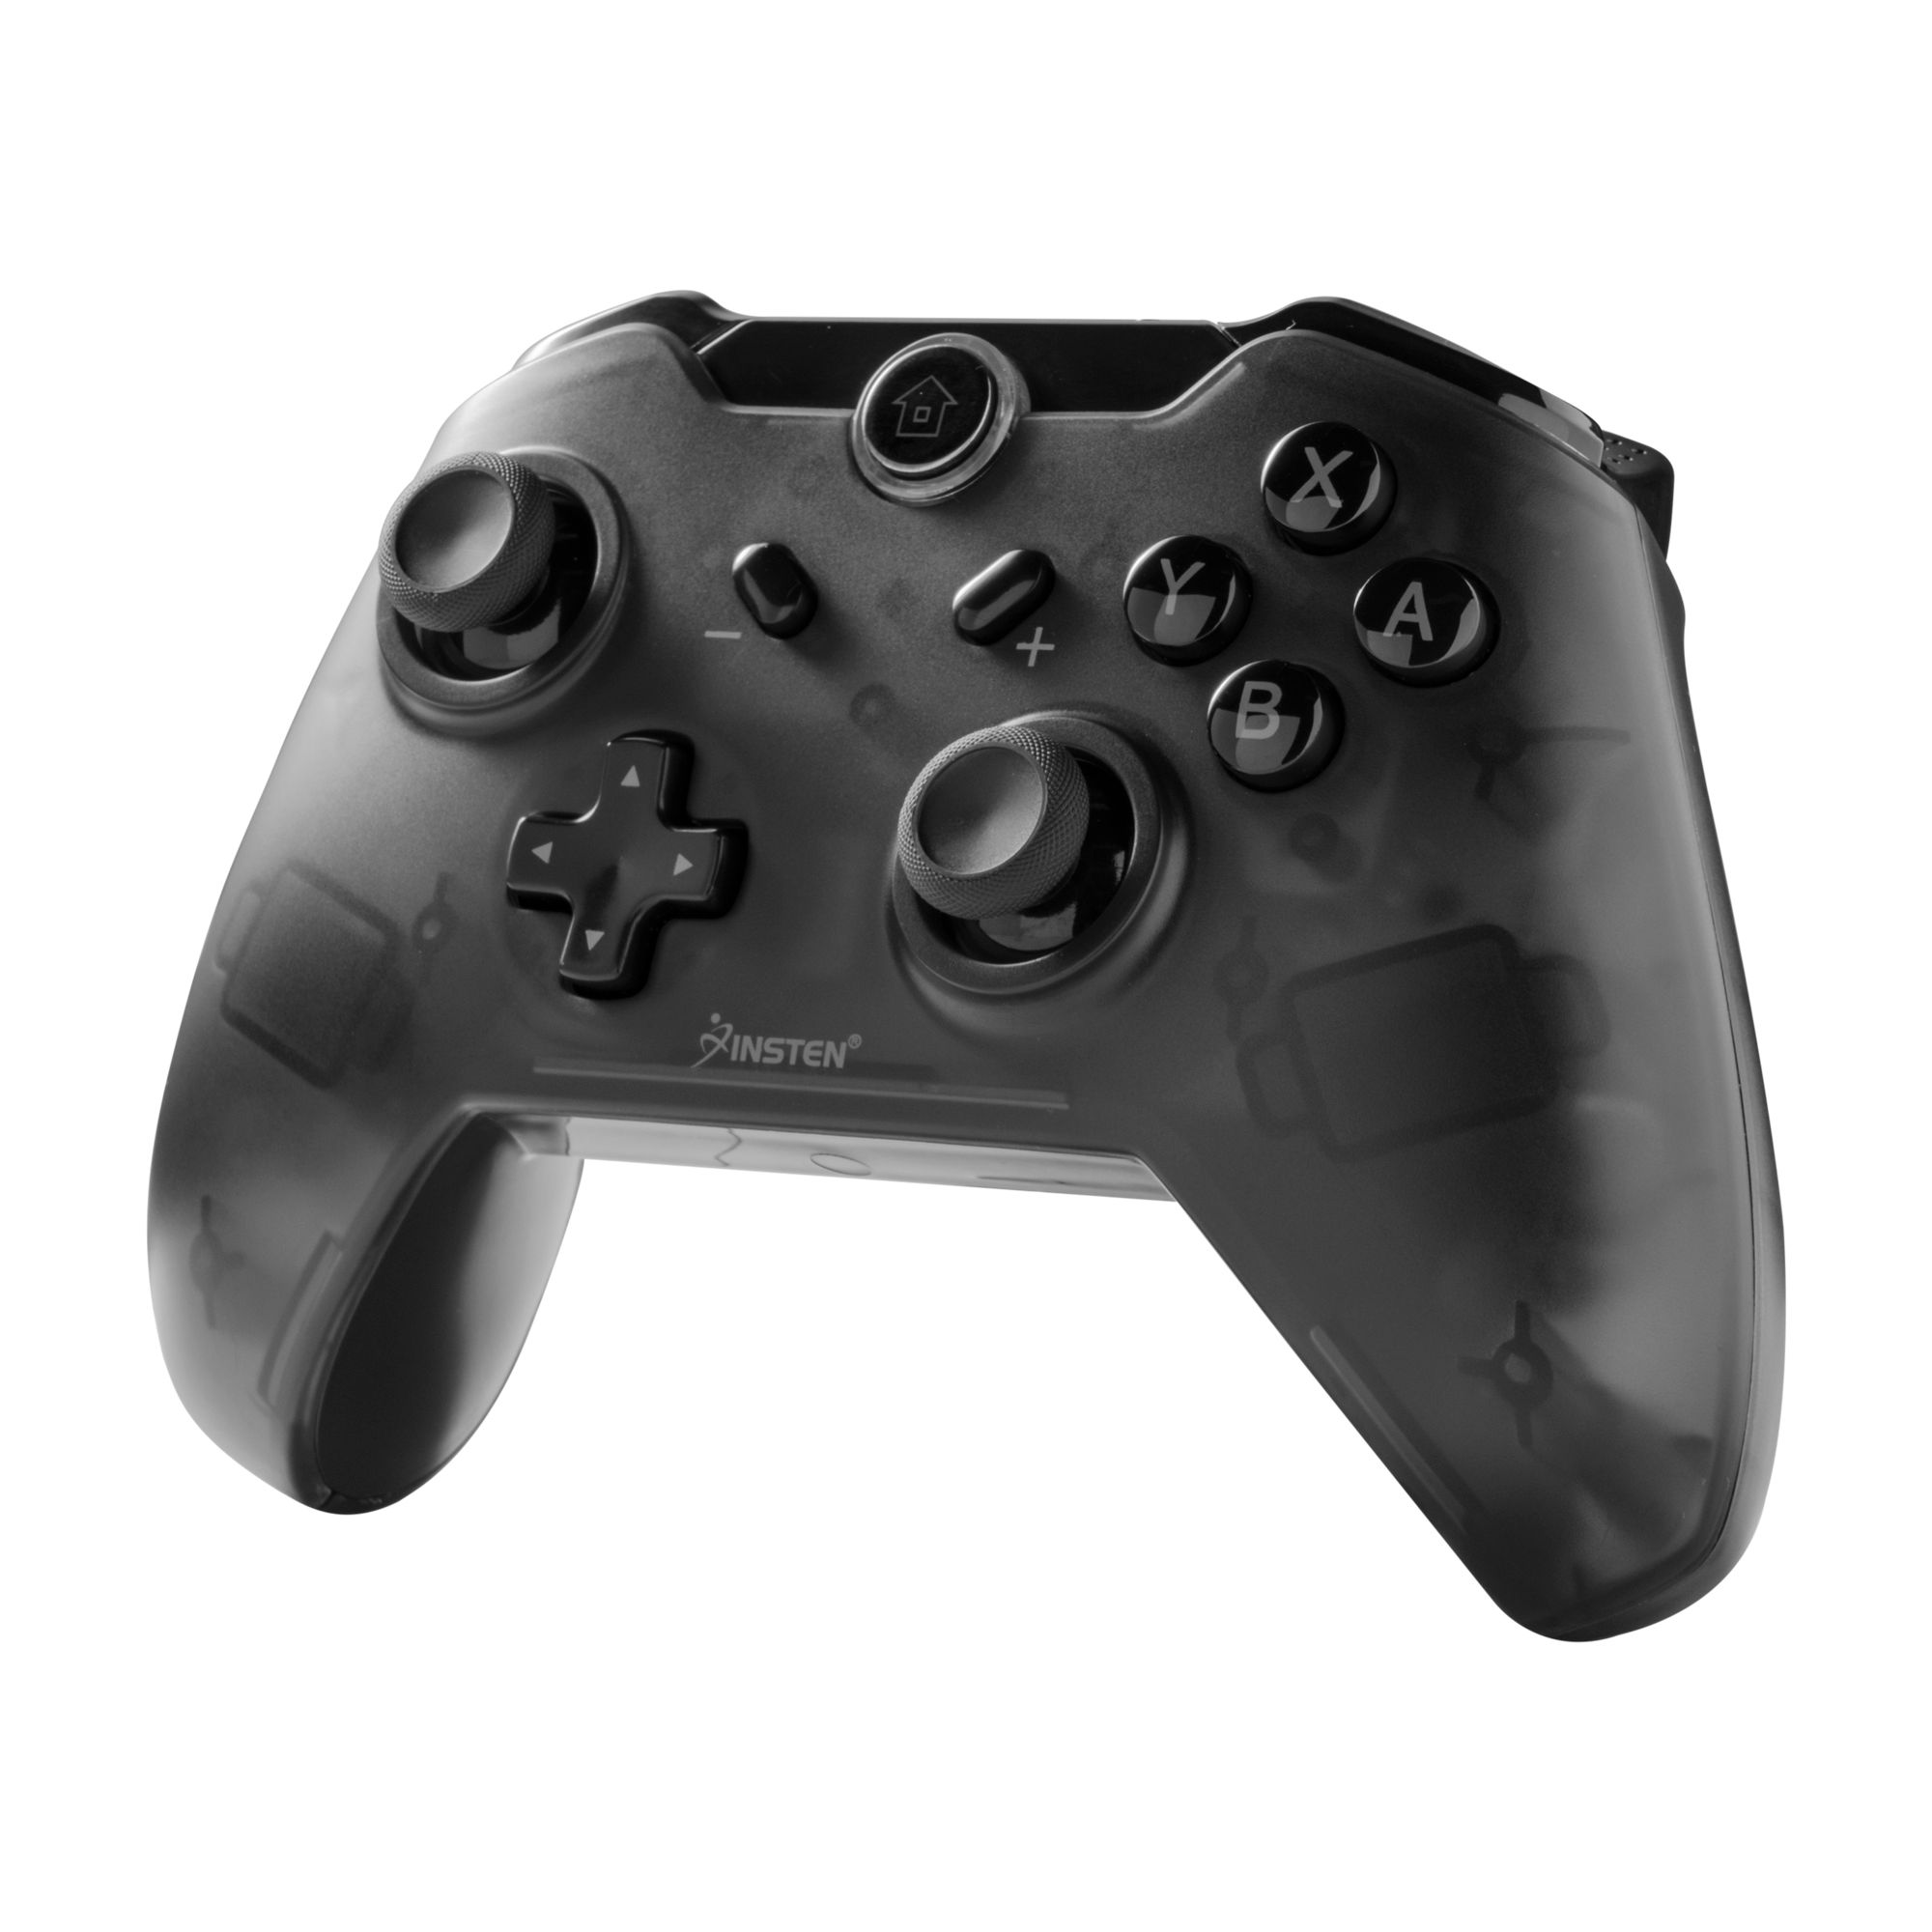 Insten Wireless Pro Controller Gamepad Joypad Remote For Nintendo Switch - Smoke Black